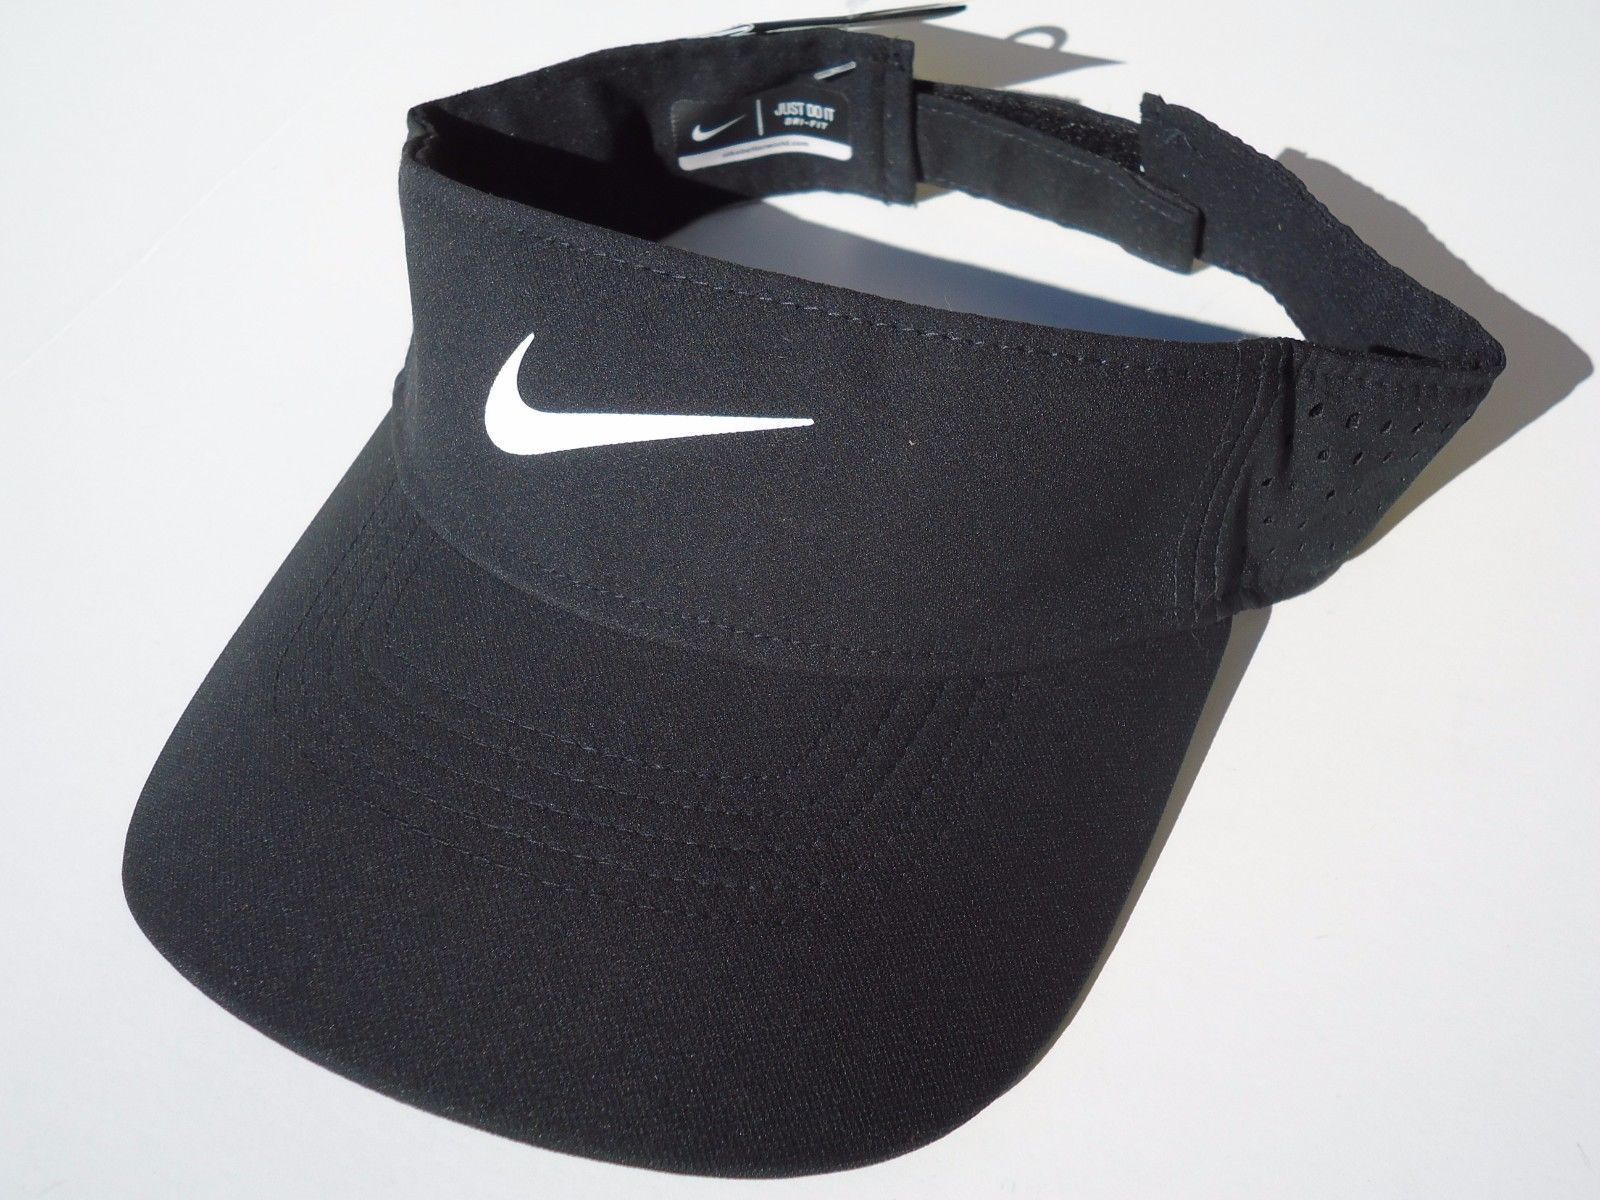 aa11c5bc659ac S l1600. S l1600. Previous. NEW! Black White NIKE Adult Unisex Golf Tech  TOUR Perforated Visor by NIKEGOLF